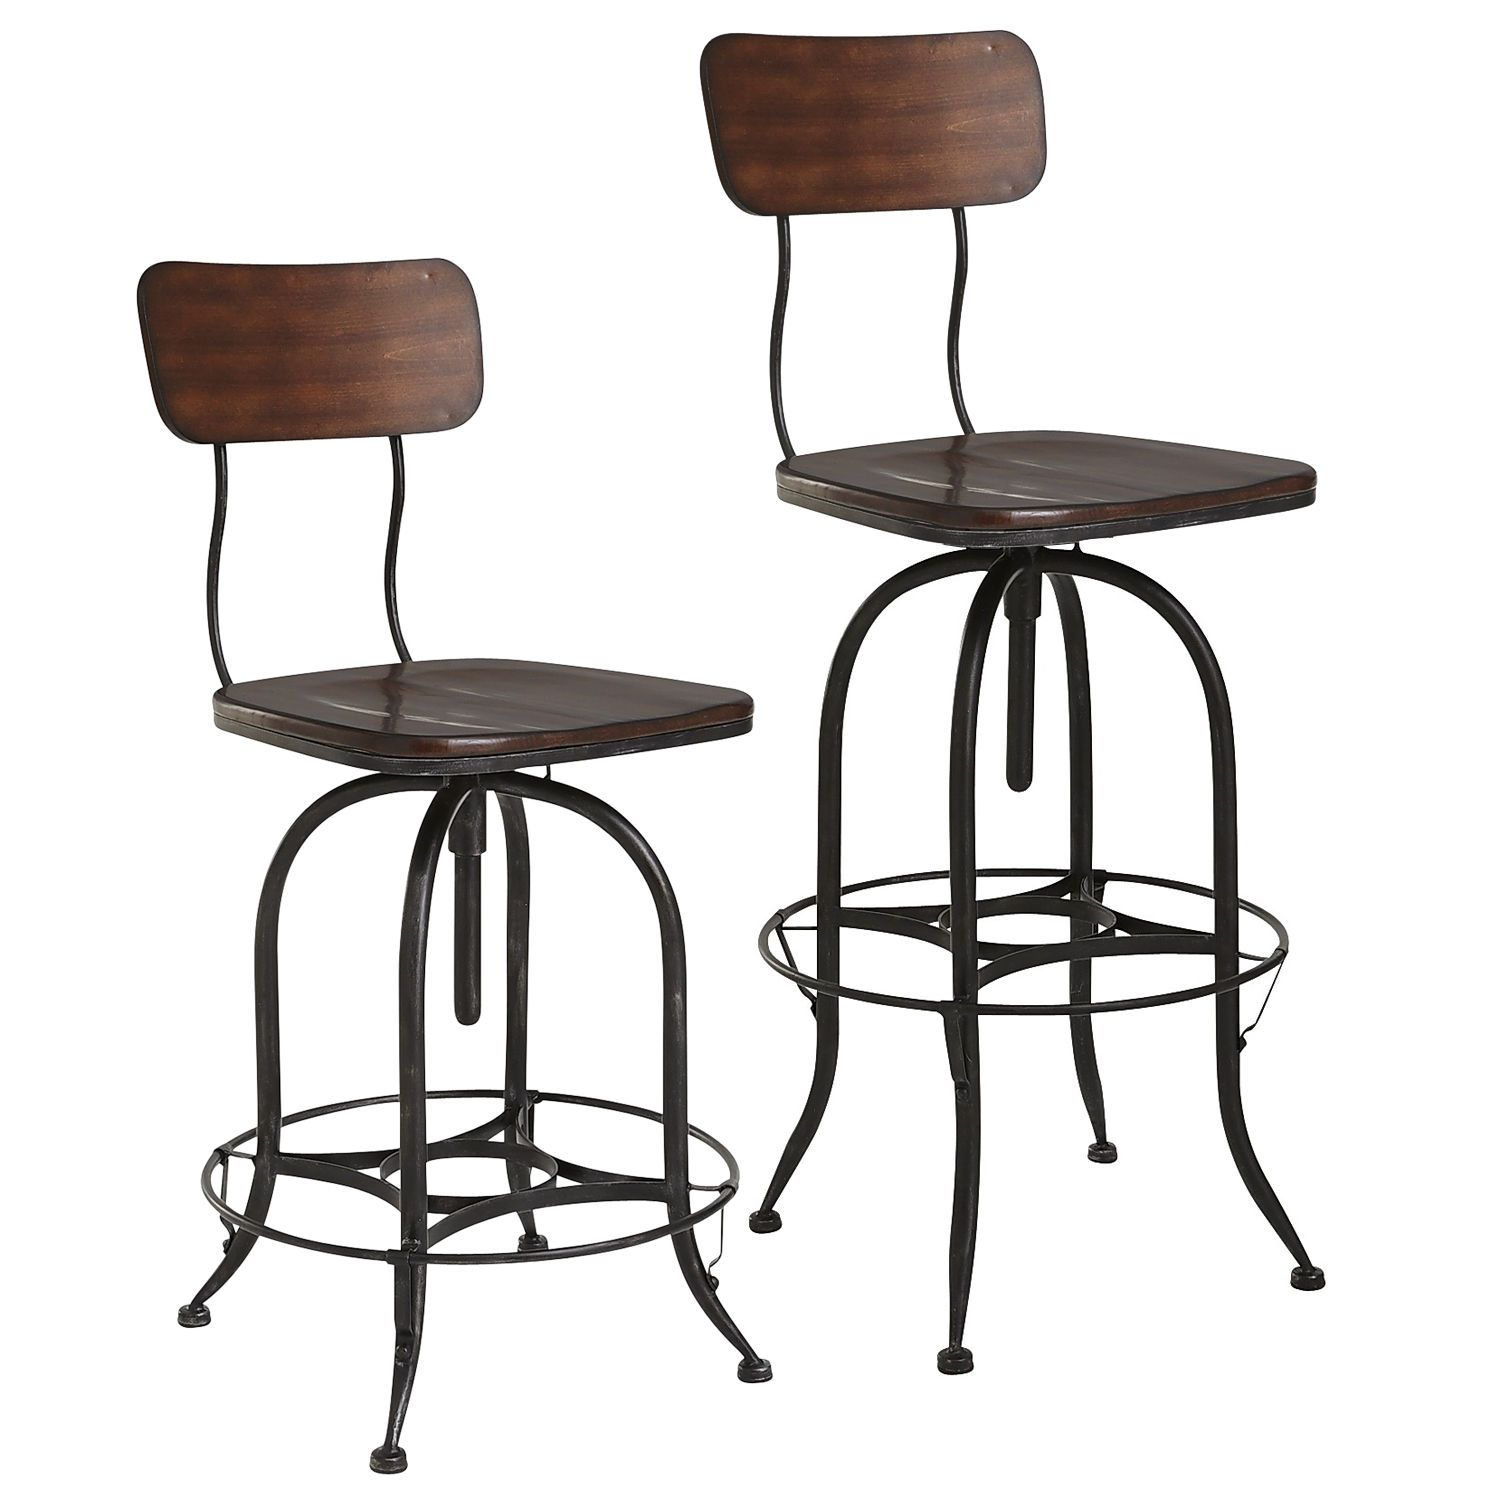 Stanford Swivel Bar & Counter Stools Wood